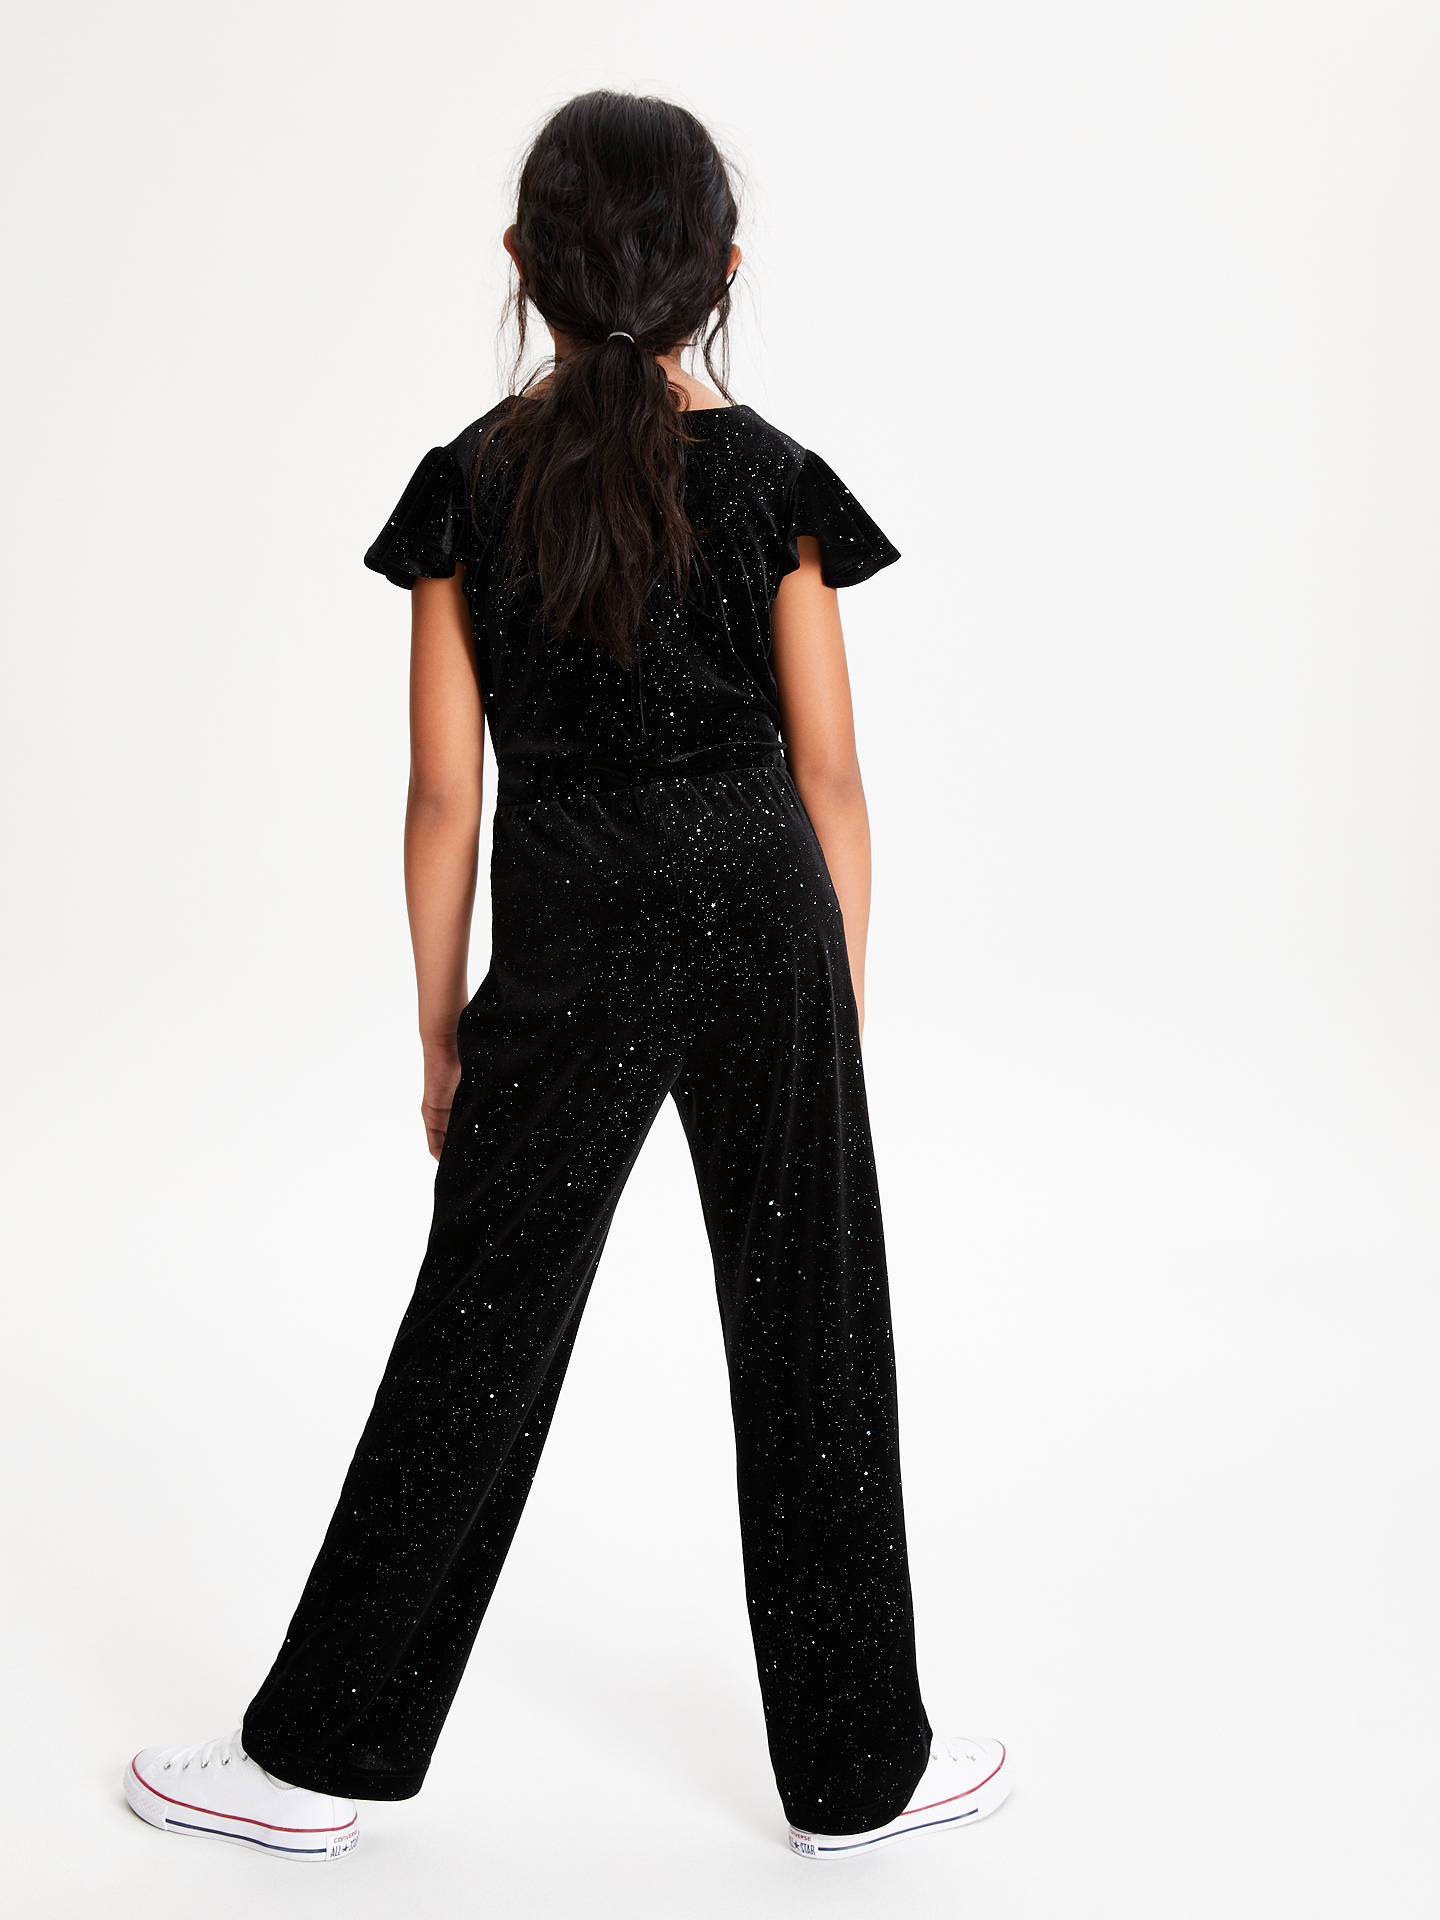 Buy John Lewis & Partners Girls' Velour Sparkle Jumpsuit, Black, 11 years Online at johnlewis.com